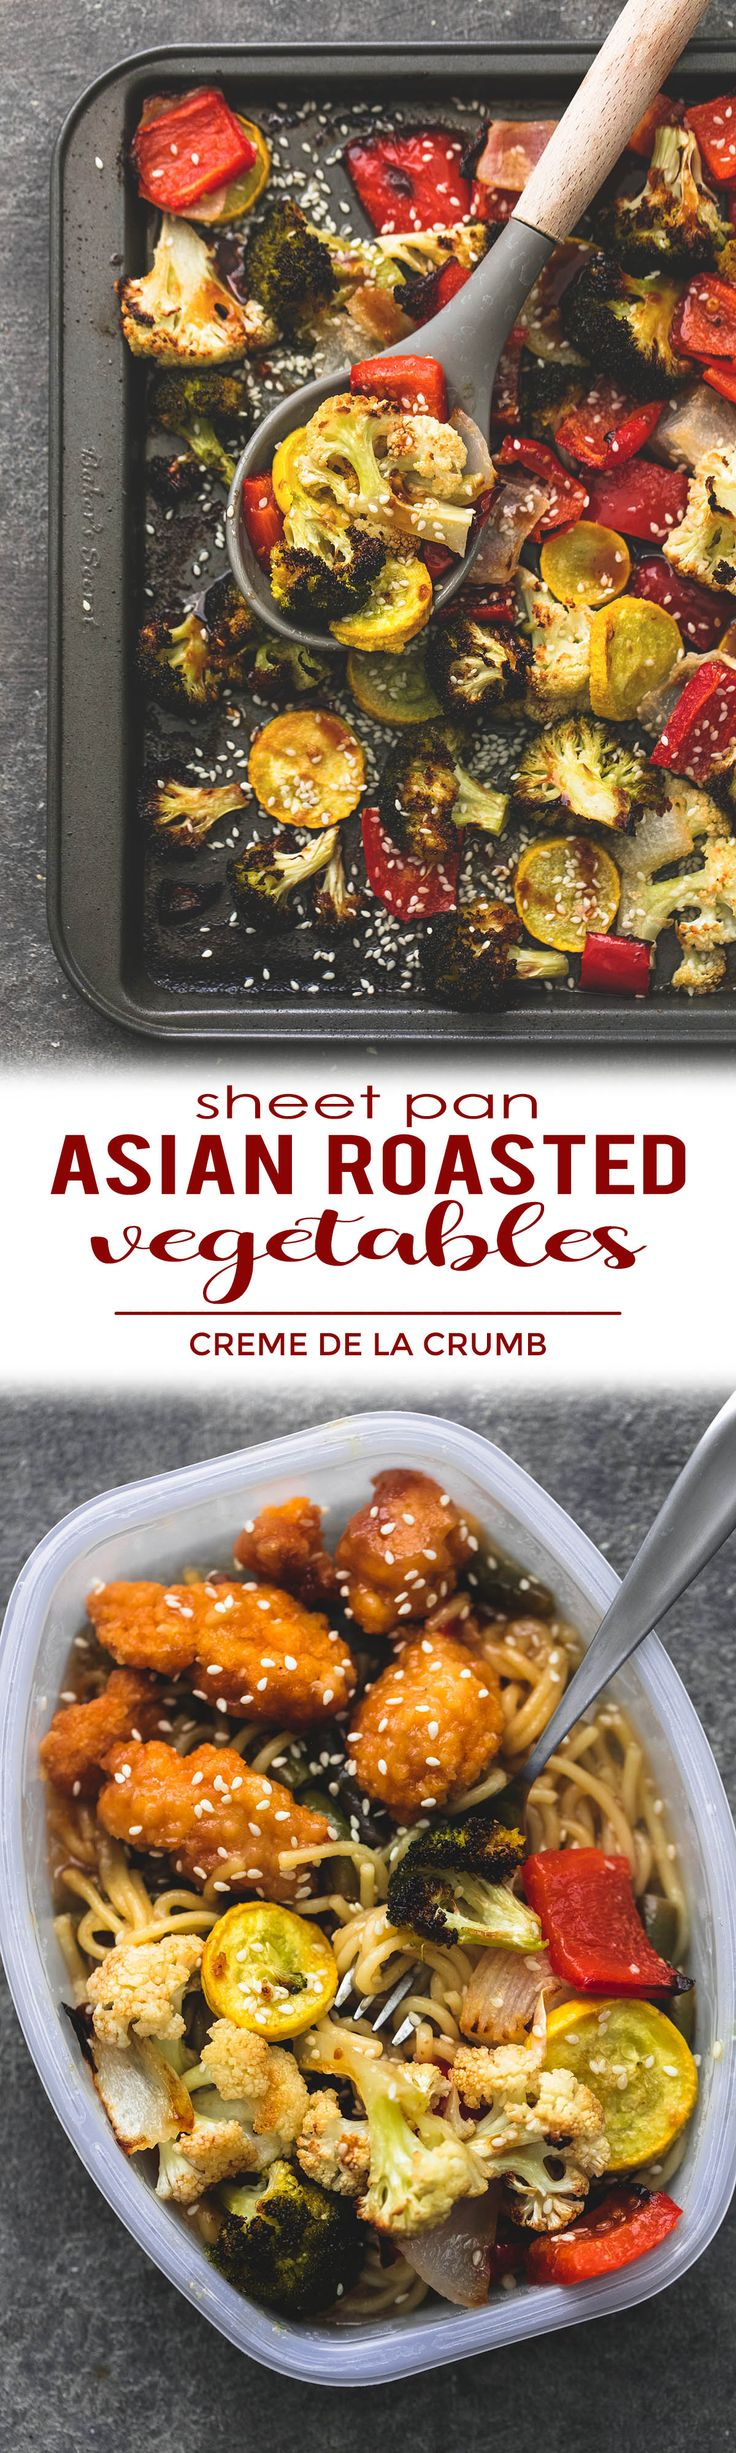 This simple recipe for sheet pan roasted Asian vegetable medley is tasty, easy, and ready in about 20 minutes. The perfect side dish for any favorite Asian entree! | lecremedelacrumb.com